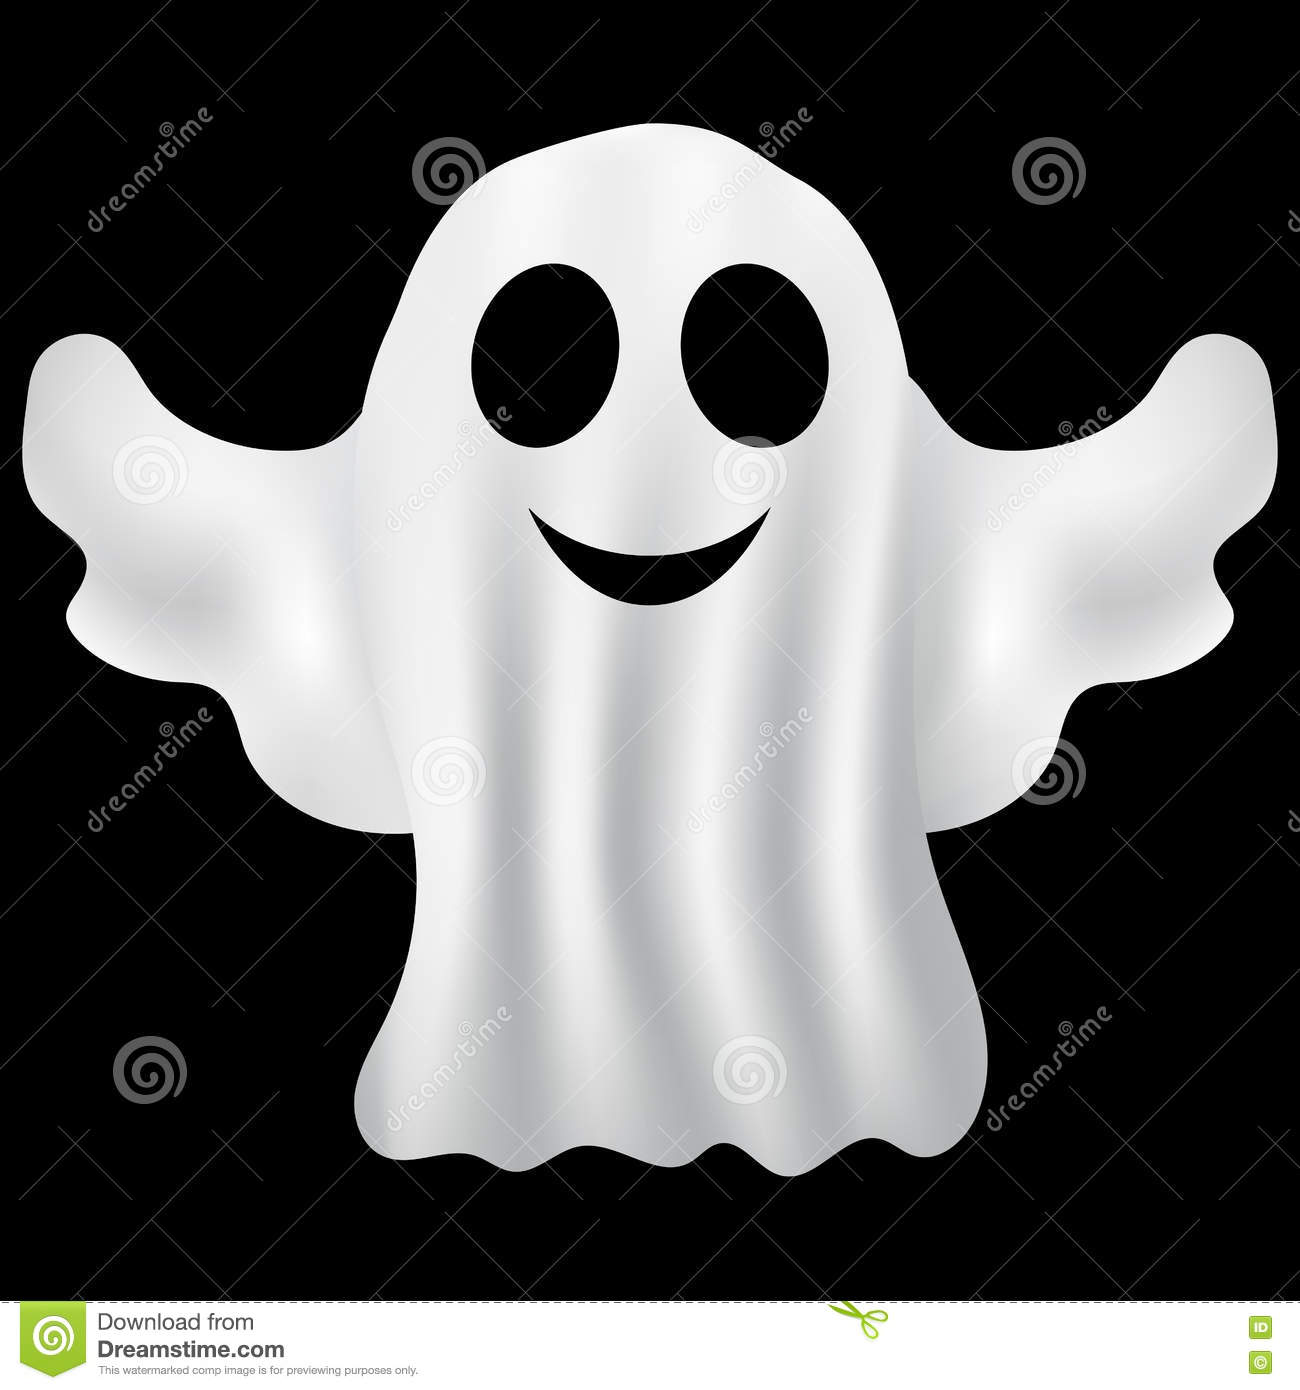 Ghost Halloween Party In A White Sheet Stock Vector - Image: 77938179